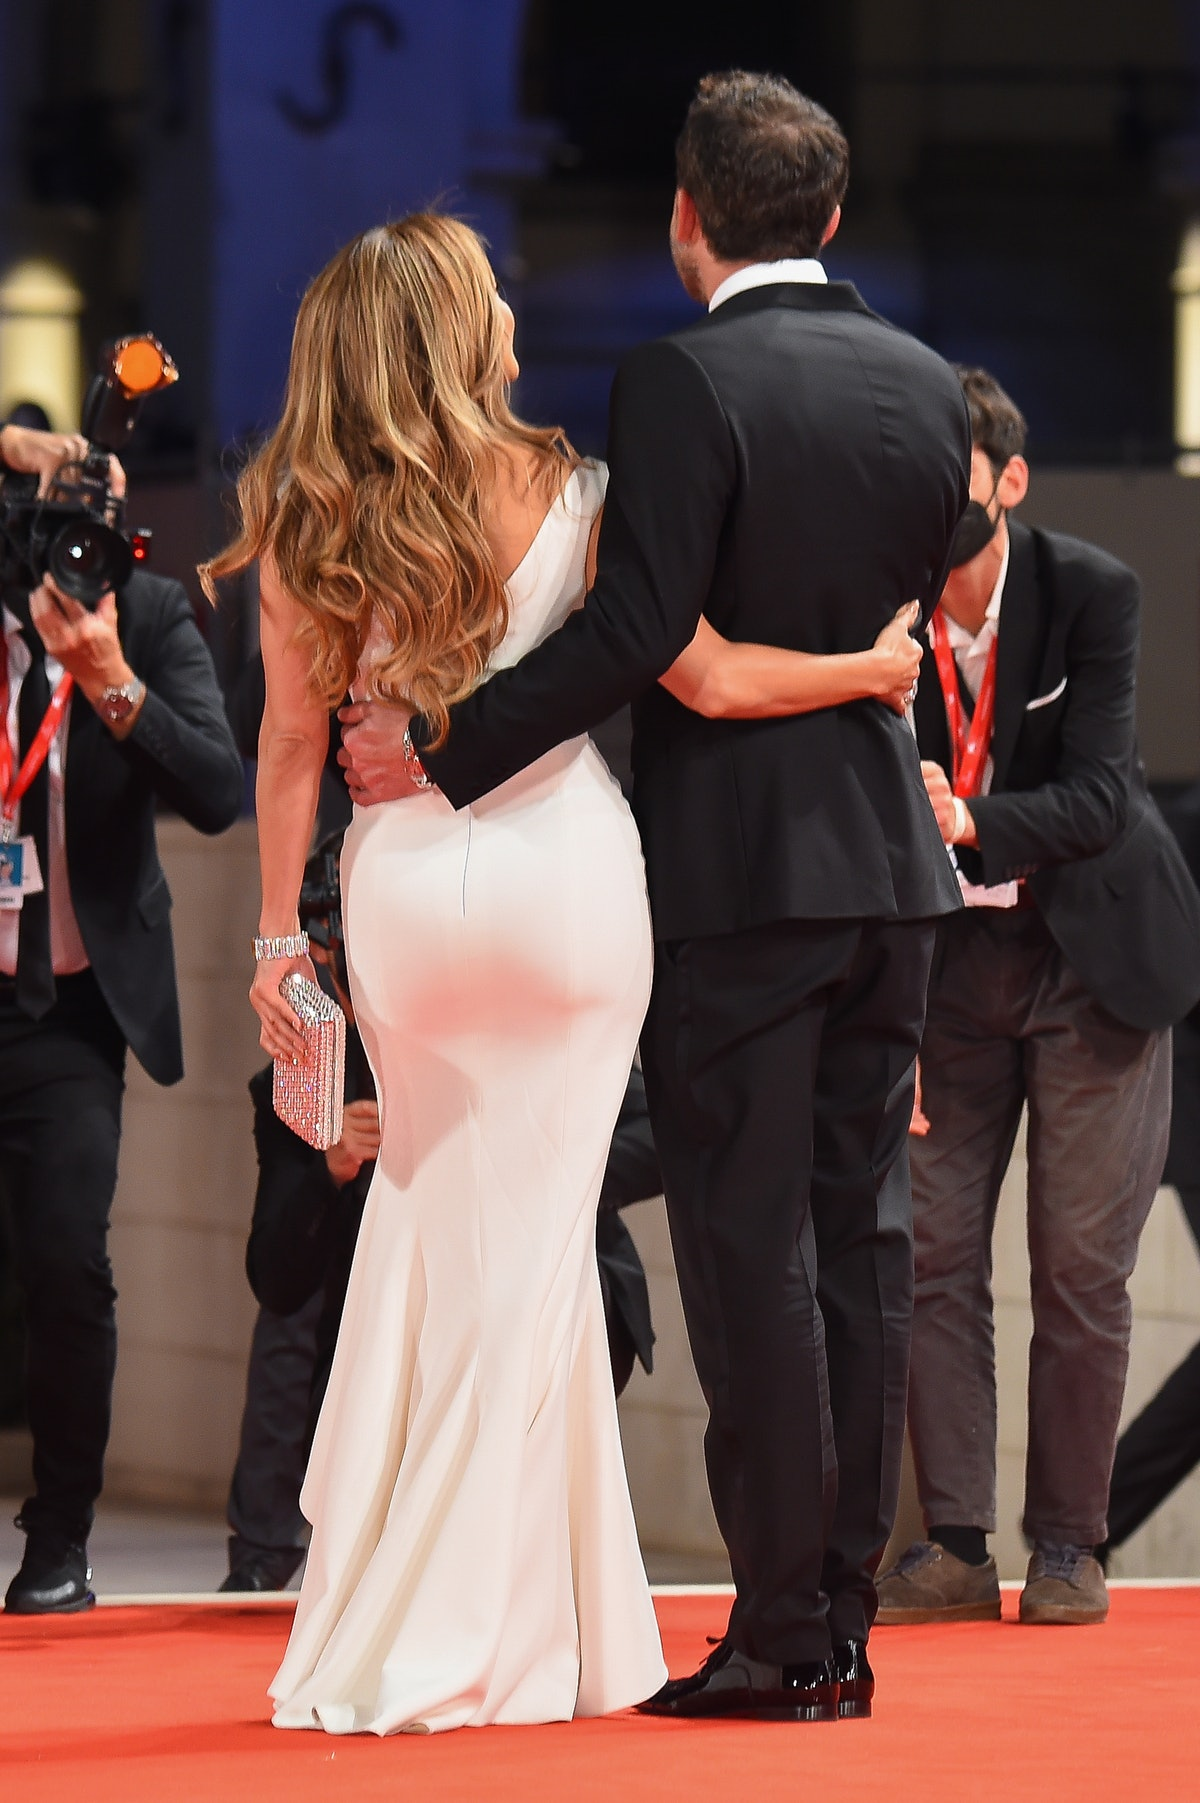 These photos of Jennifer Lopez and Ben Affleck at the 2021 premiere of 'The Last Duel' are so cute.